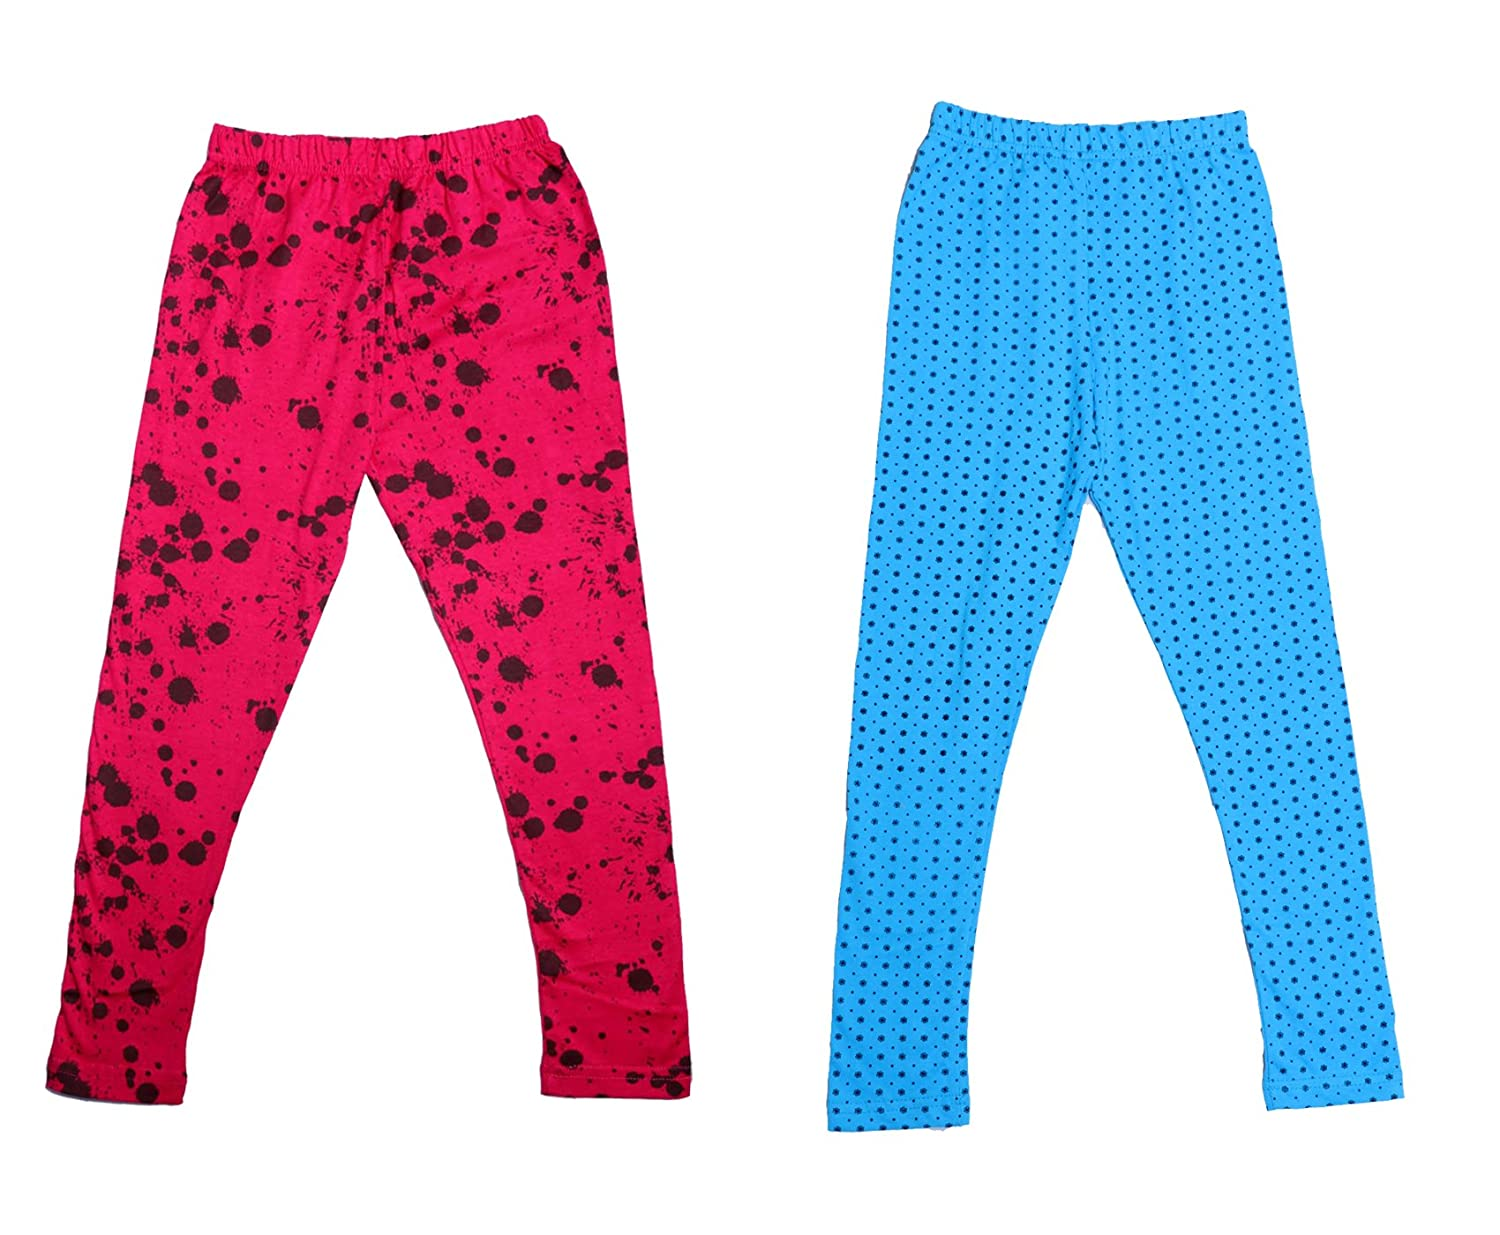 Indistar IndiWeaves Girls Super Soft and Stylish Cotton Printed Legging Pack Of 2